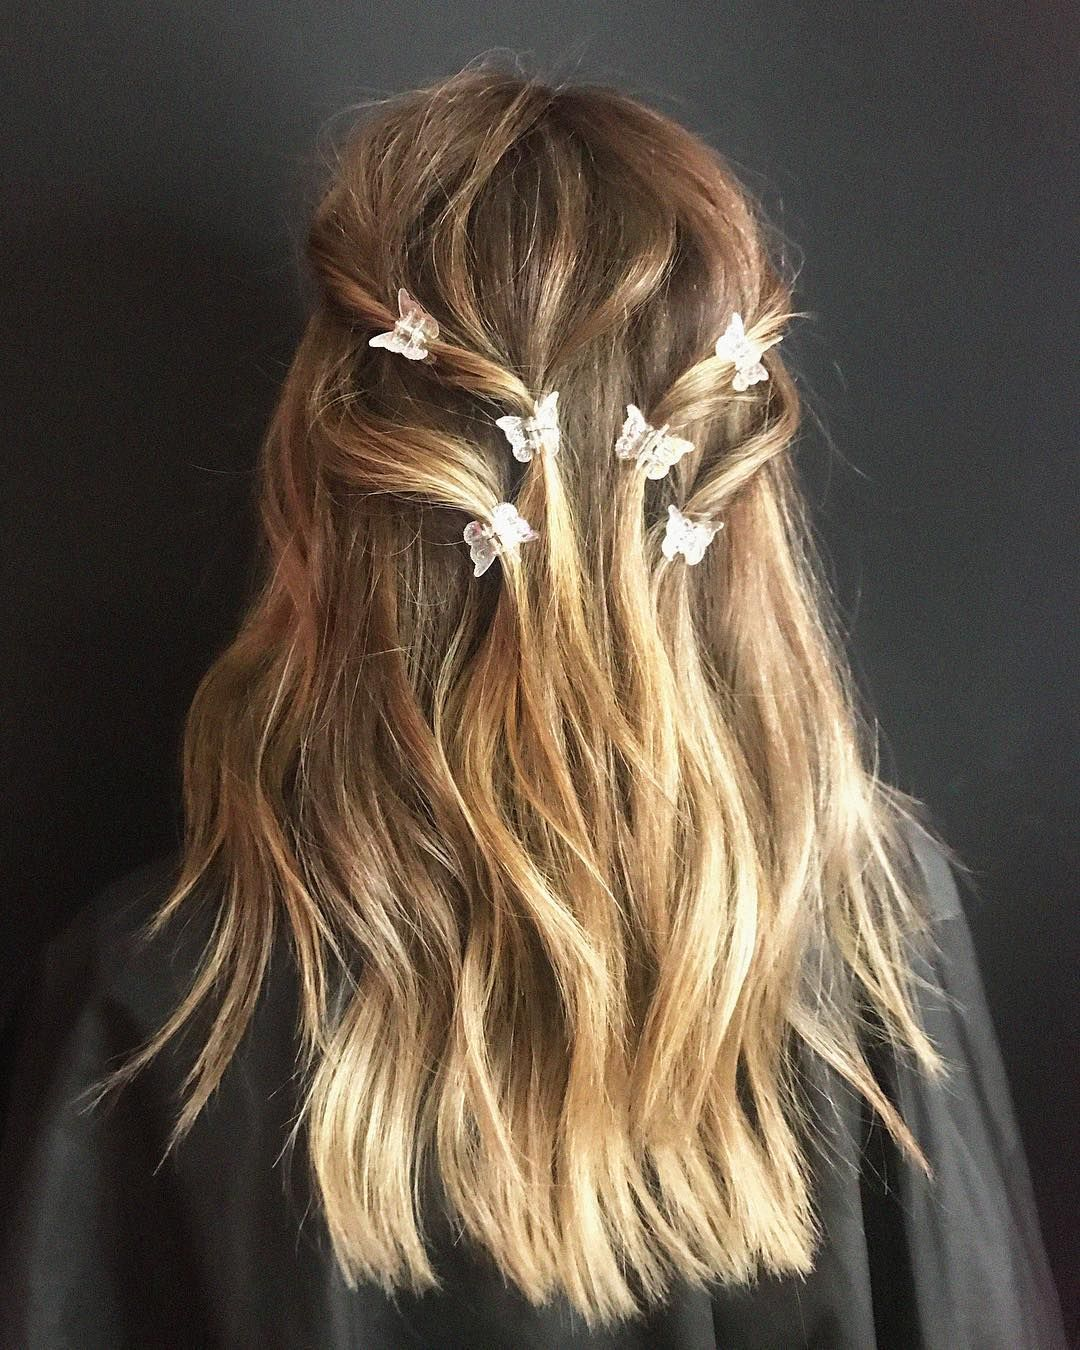 Butterfly Clips Are Back Clip Hairstyles Aesthetic Hair Hair Styles